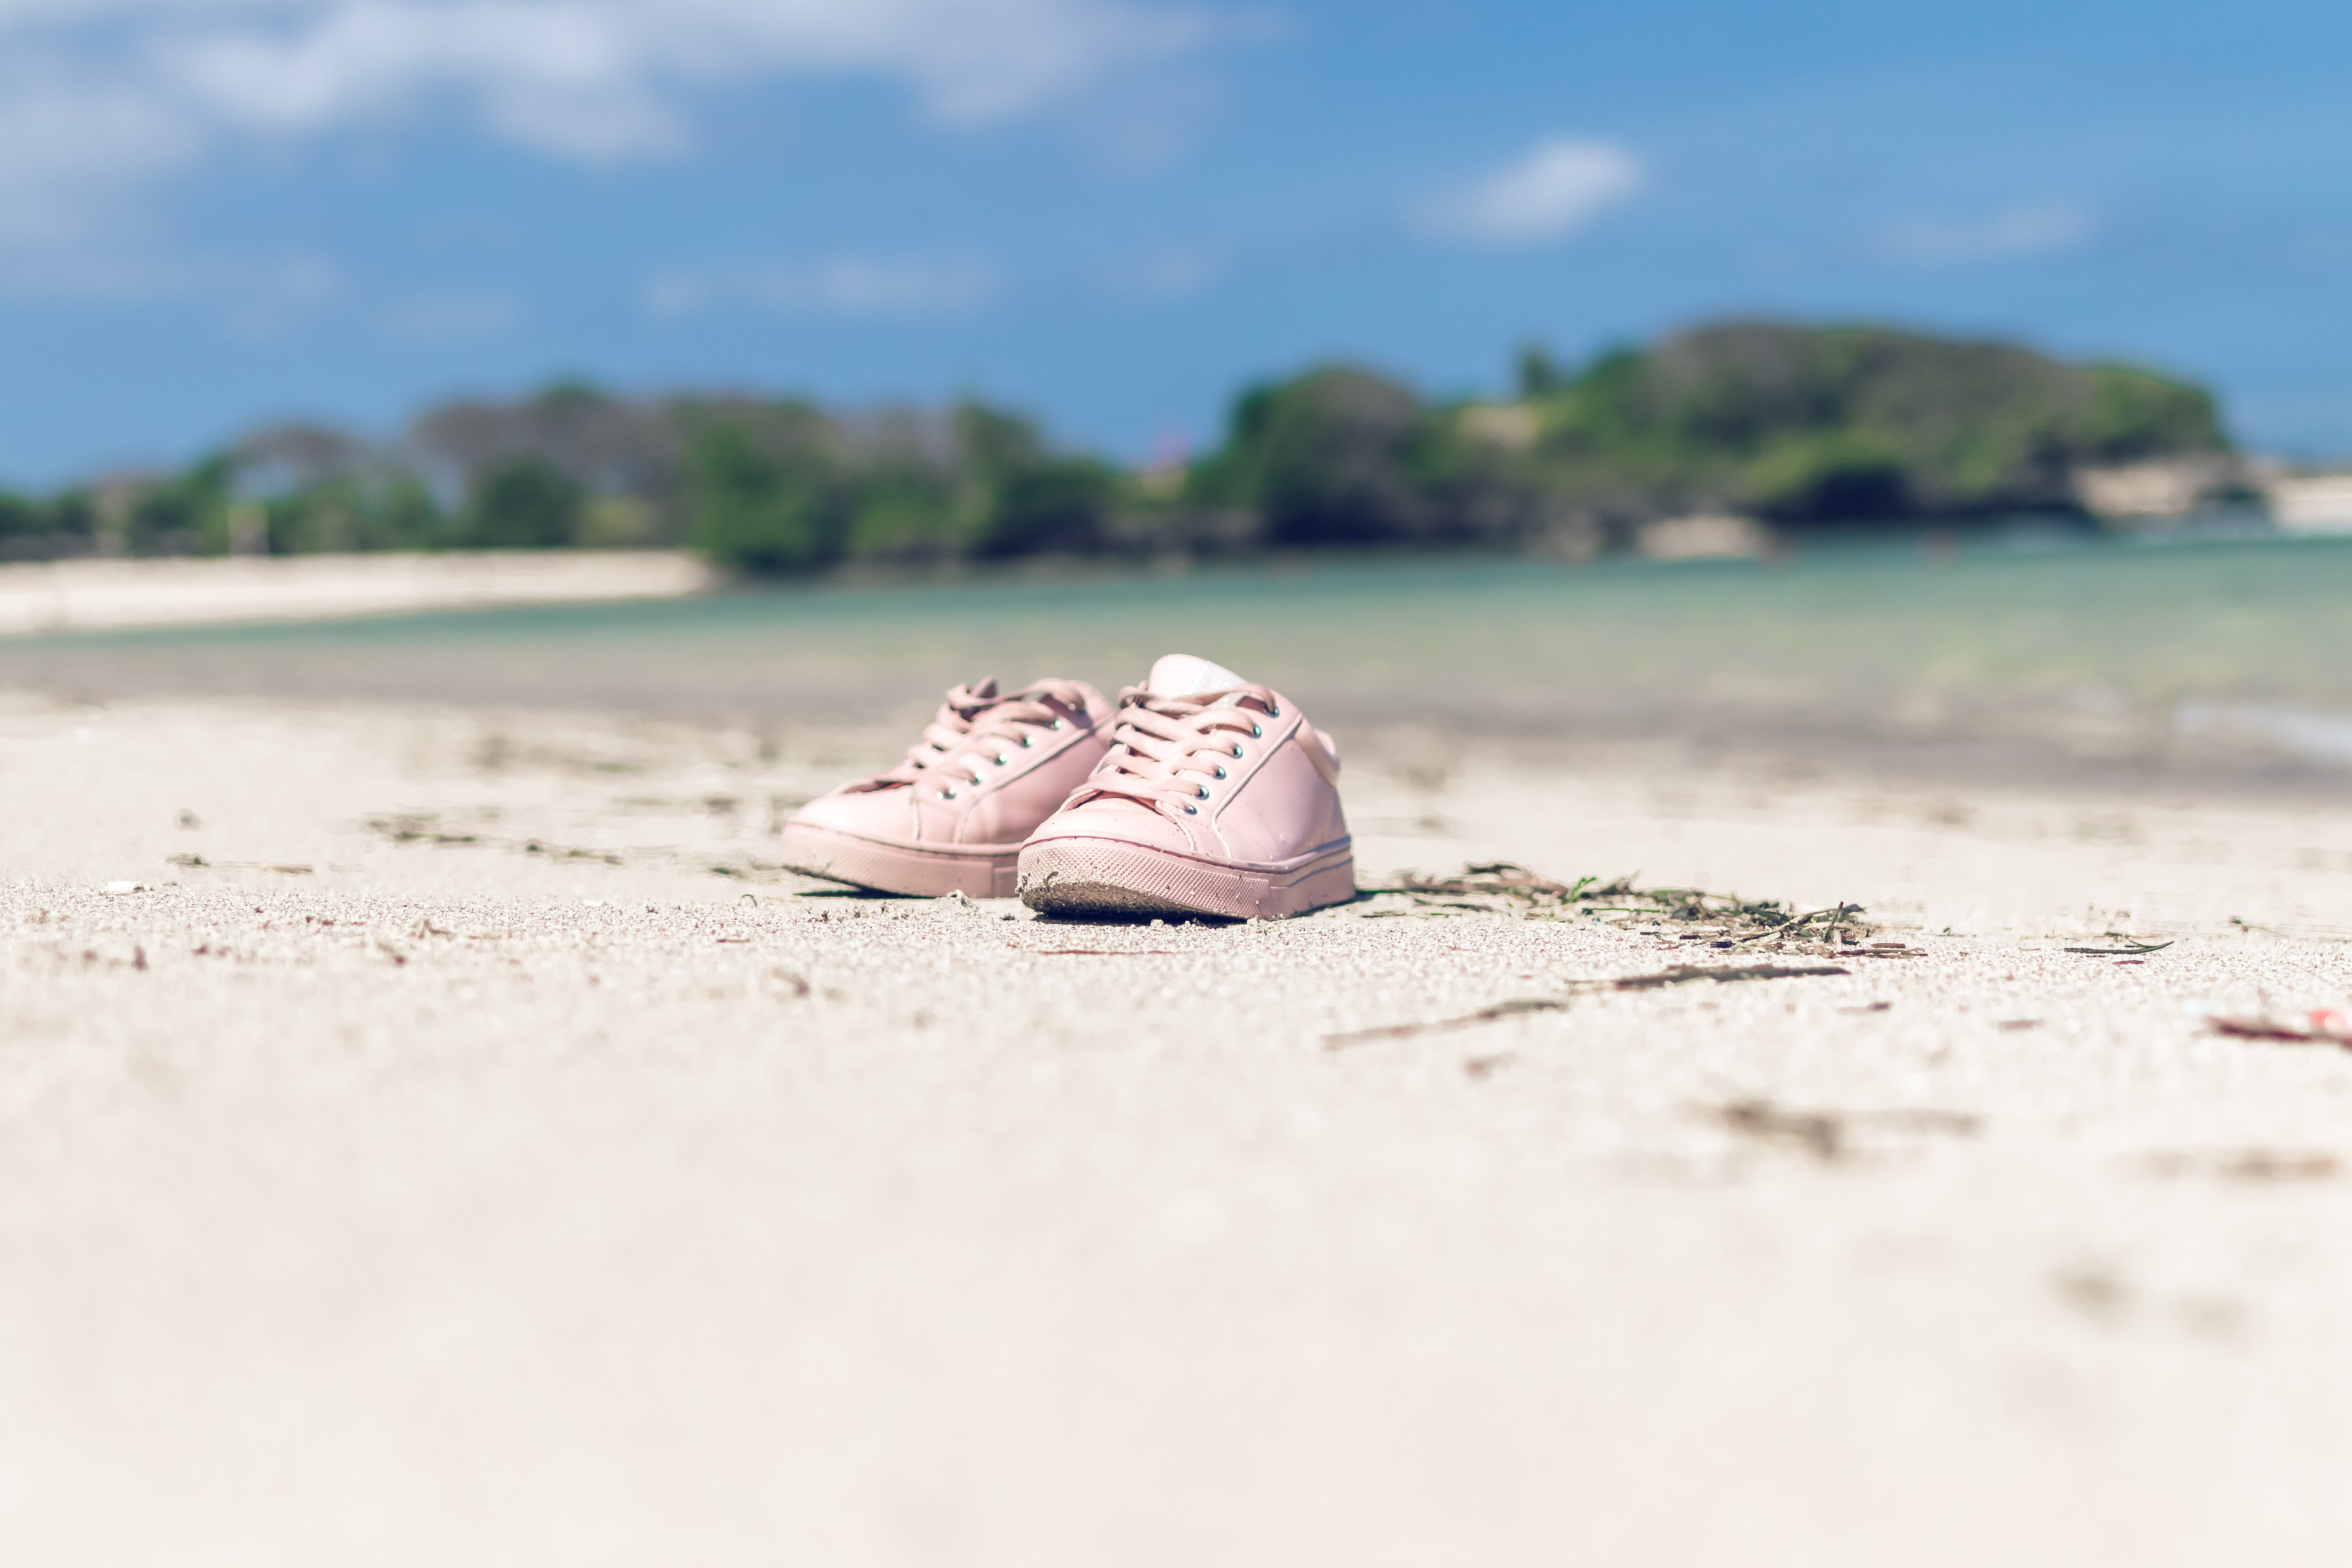 pair of pink shoes on white sand near water during daytime